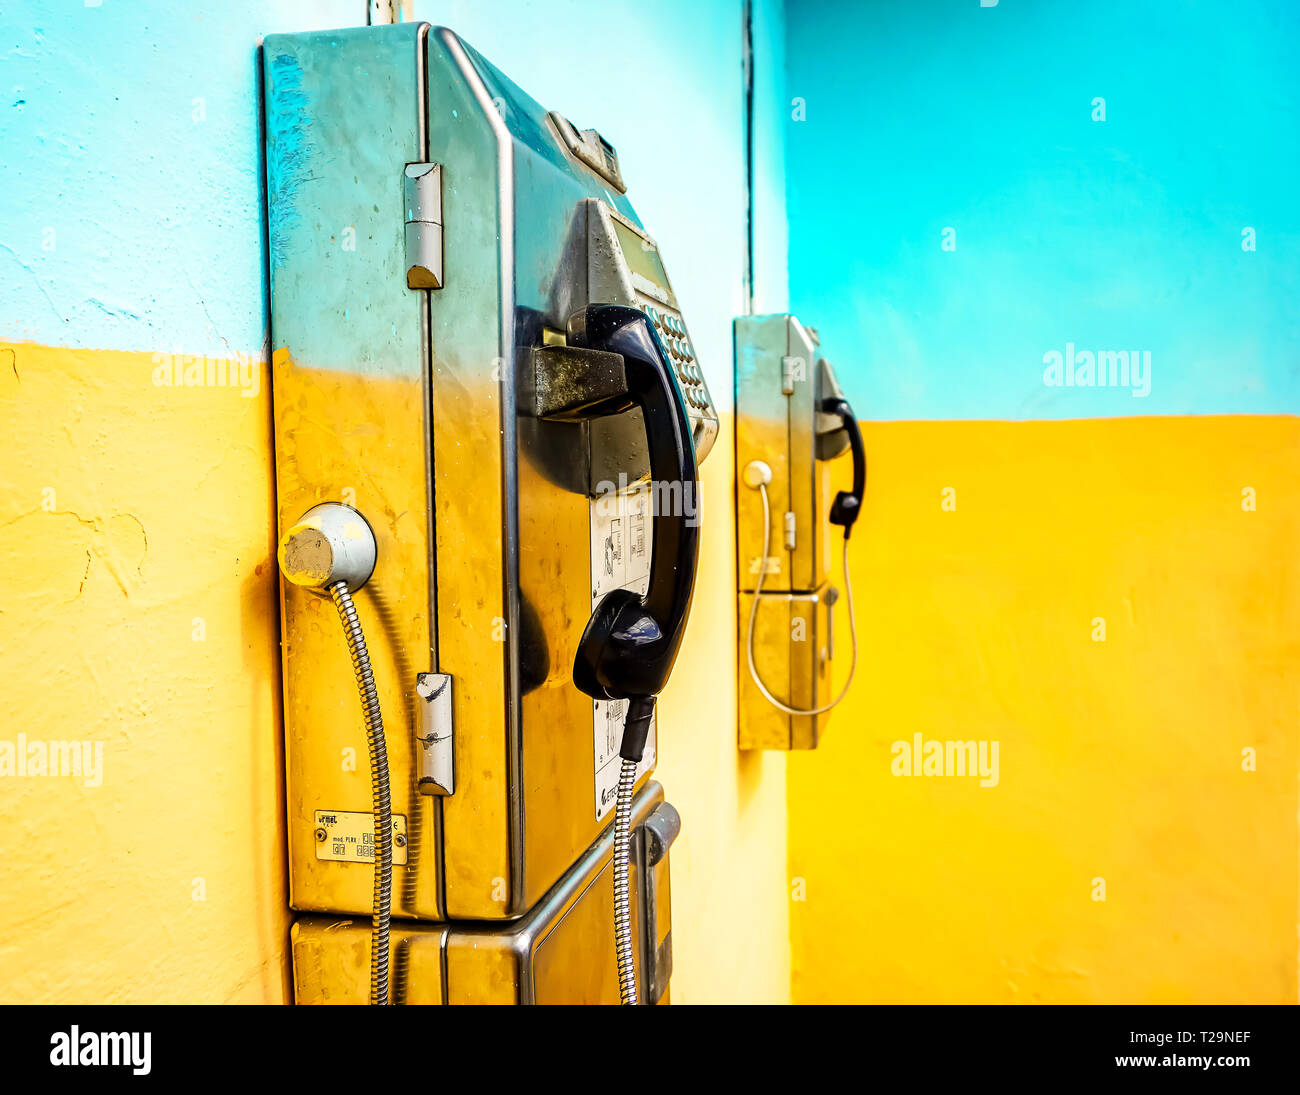 Cuba and the people. You can see in this picture how the mindset is. They painting over the telephone box. You can see the spots on the phone box. - Stock Image